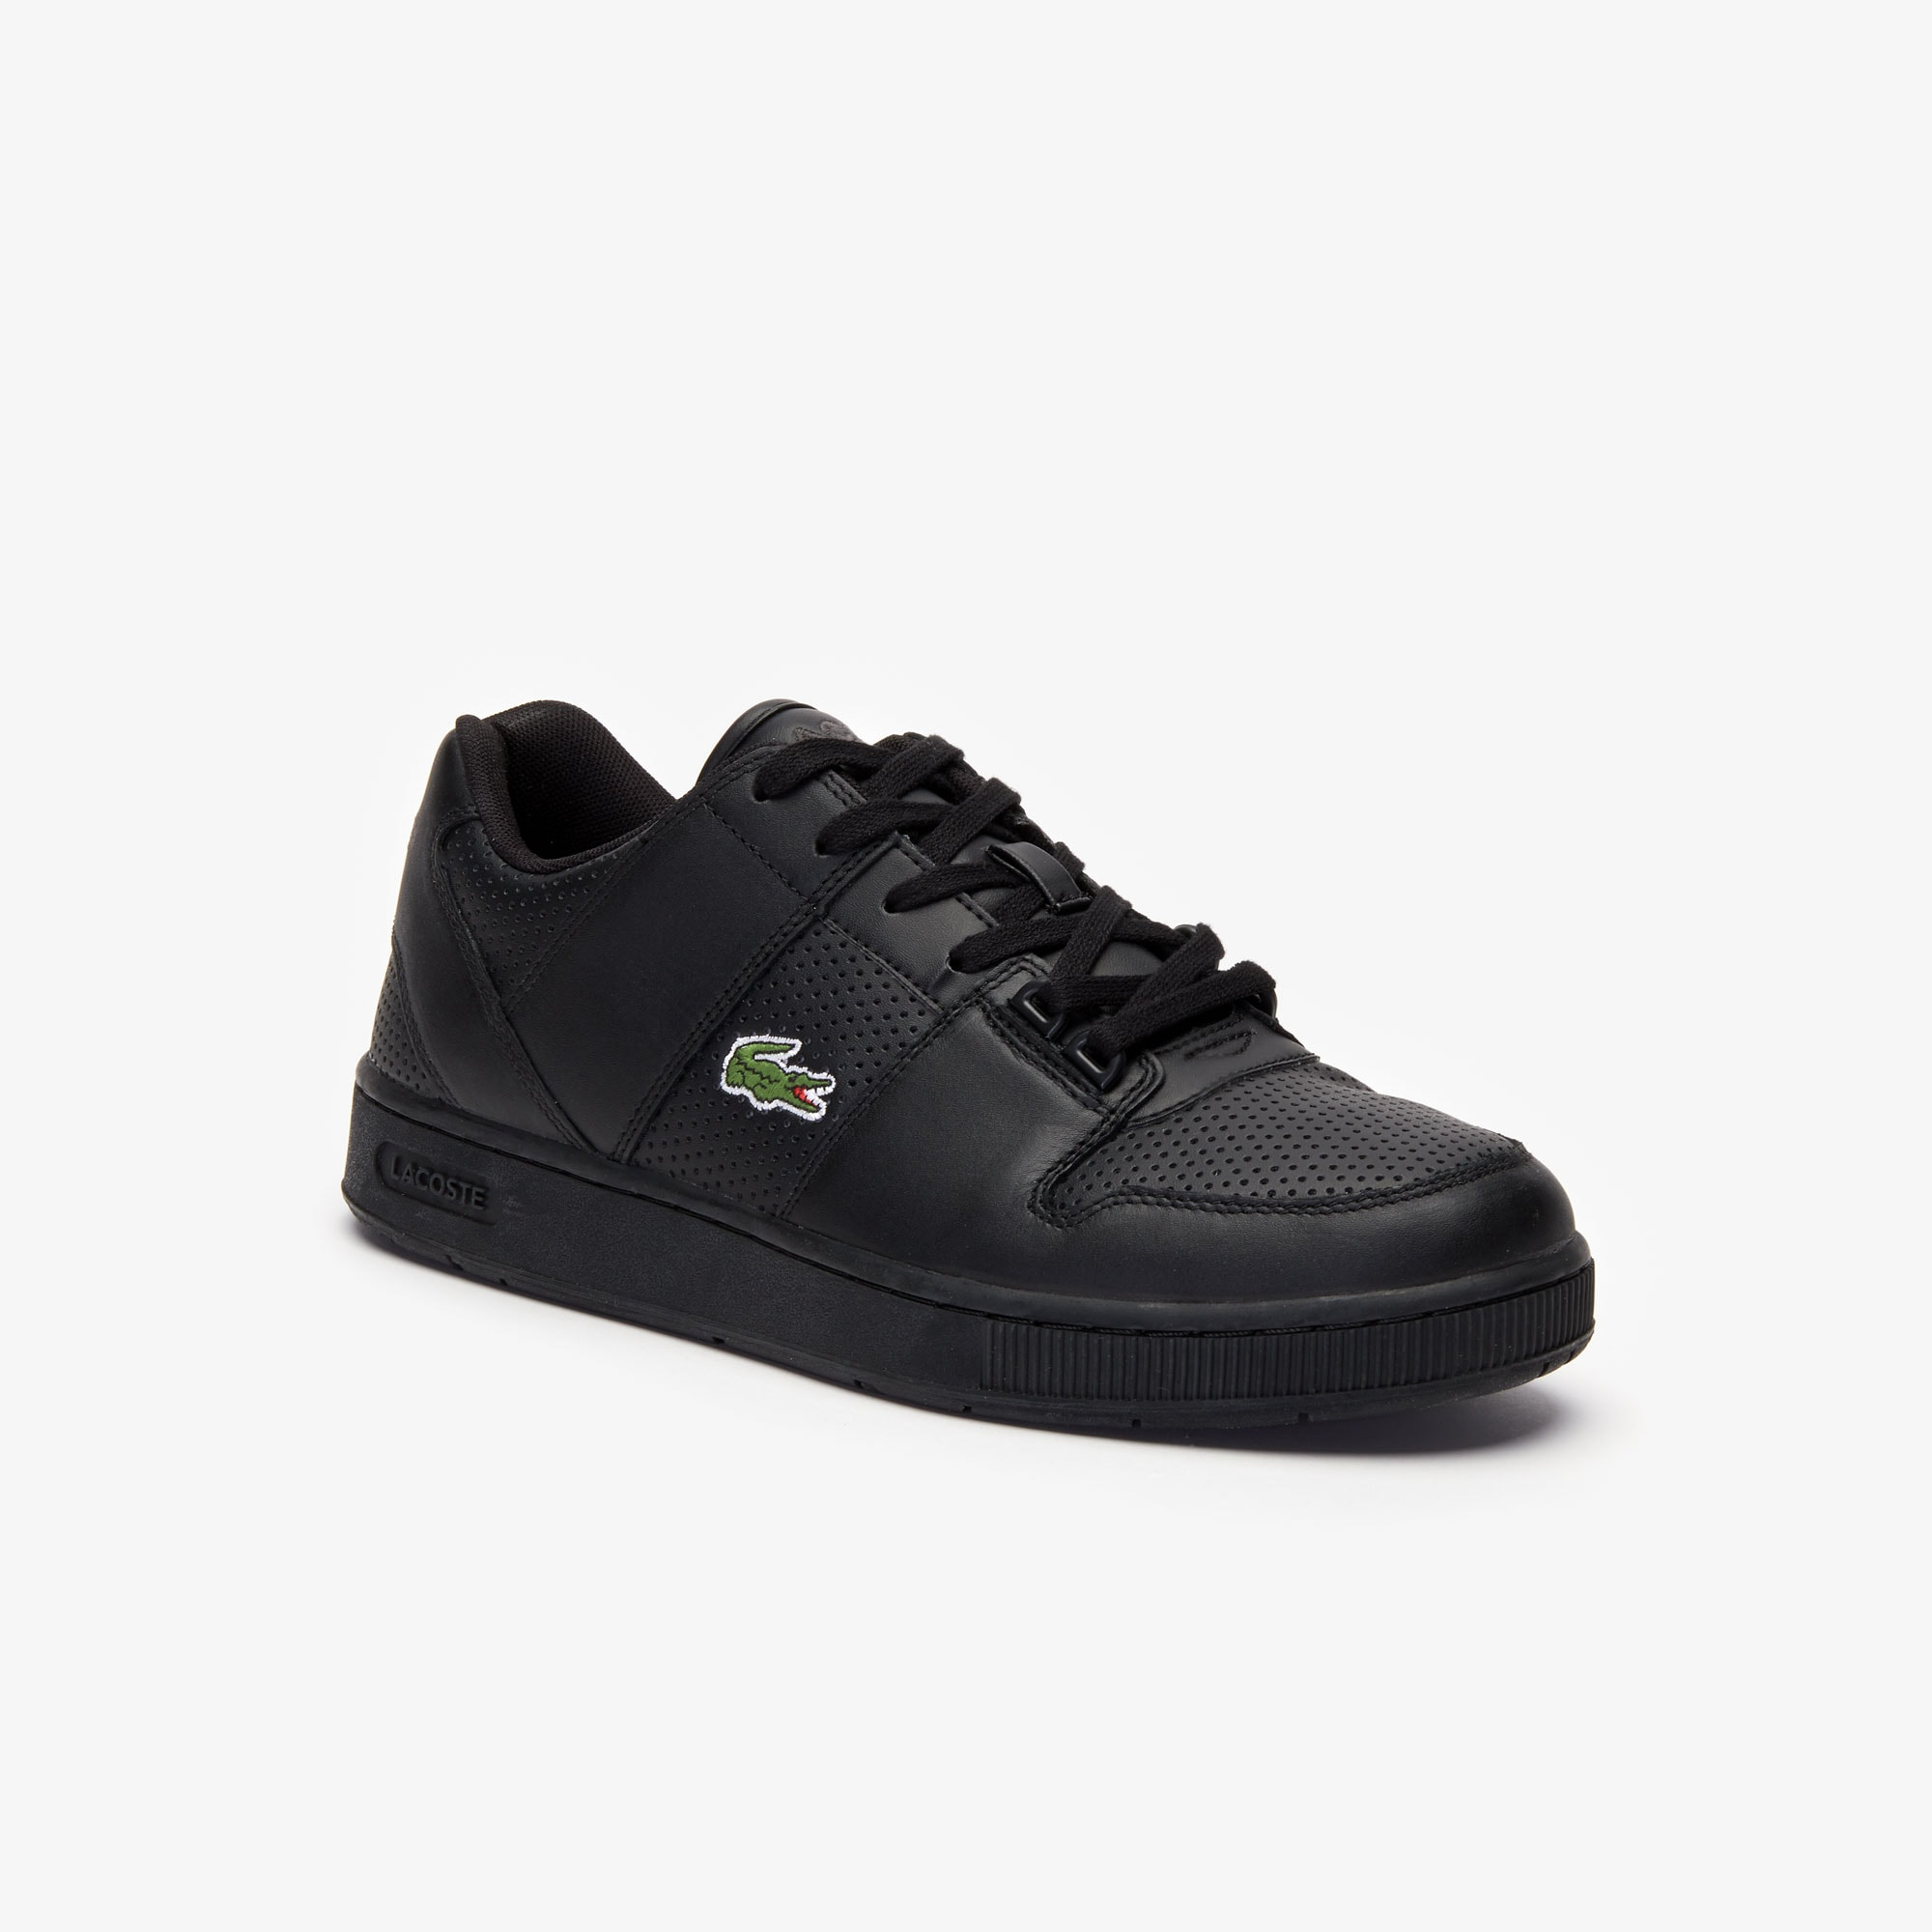 Lacoste Sneakers Men's Thrill Leather Sneakers